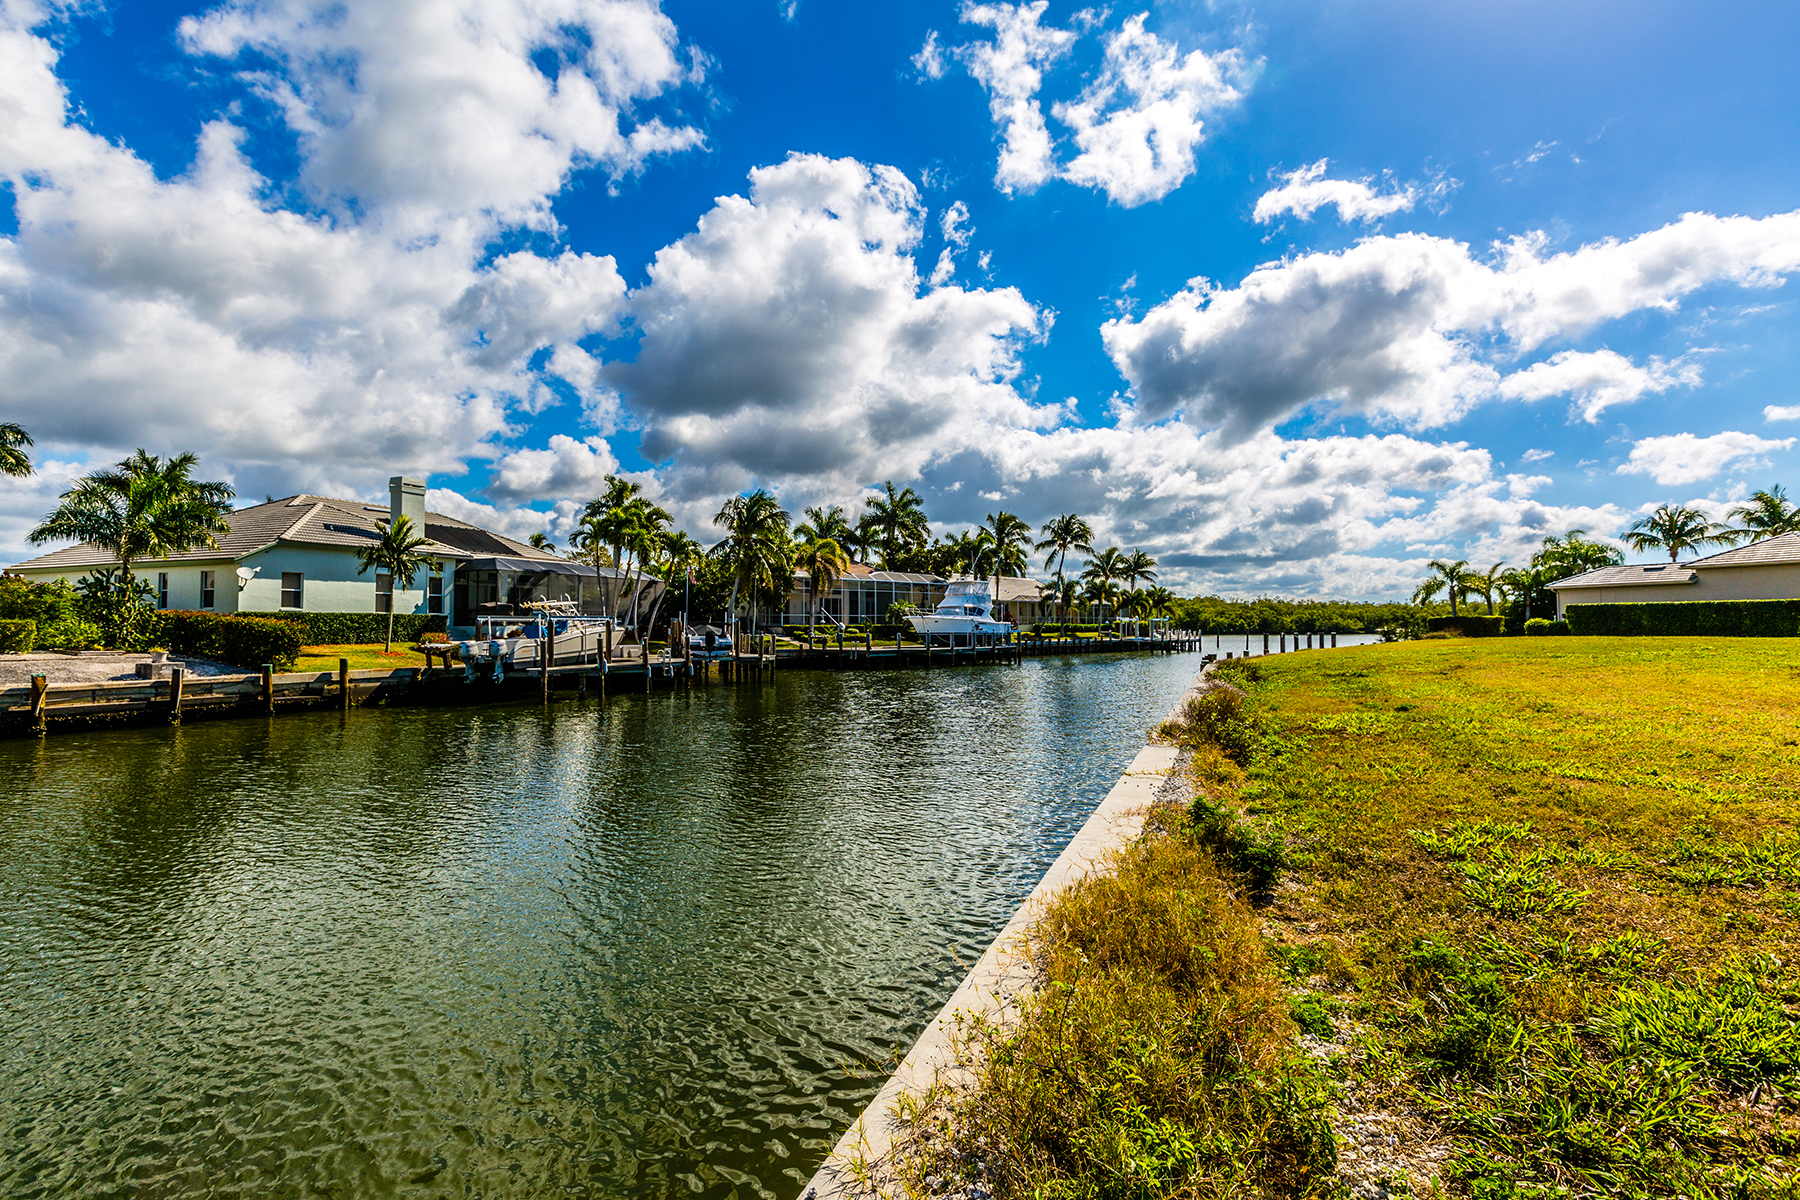 Land for Sale at MARCO ISLAND - HOLLYHOCK COURT 131 Hollyhock Ct Marco Island, Florida, 34145 United States